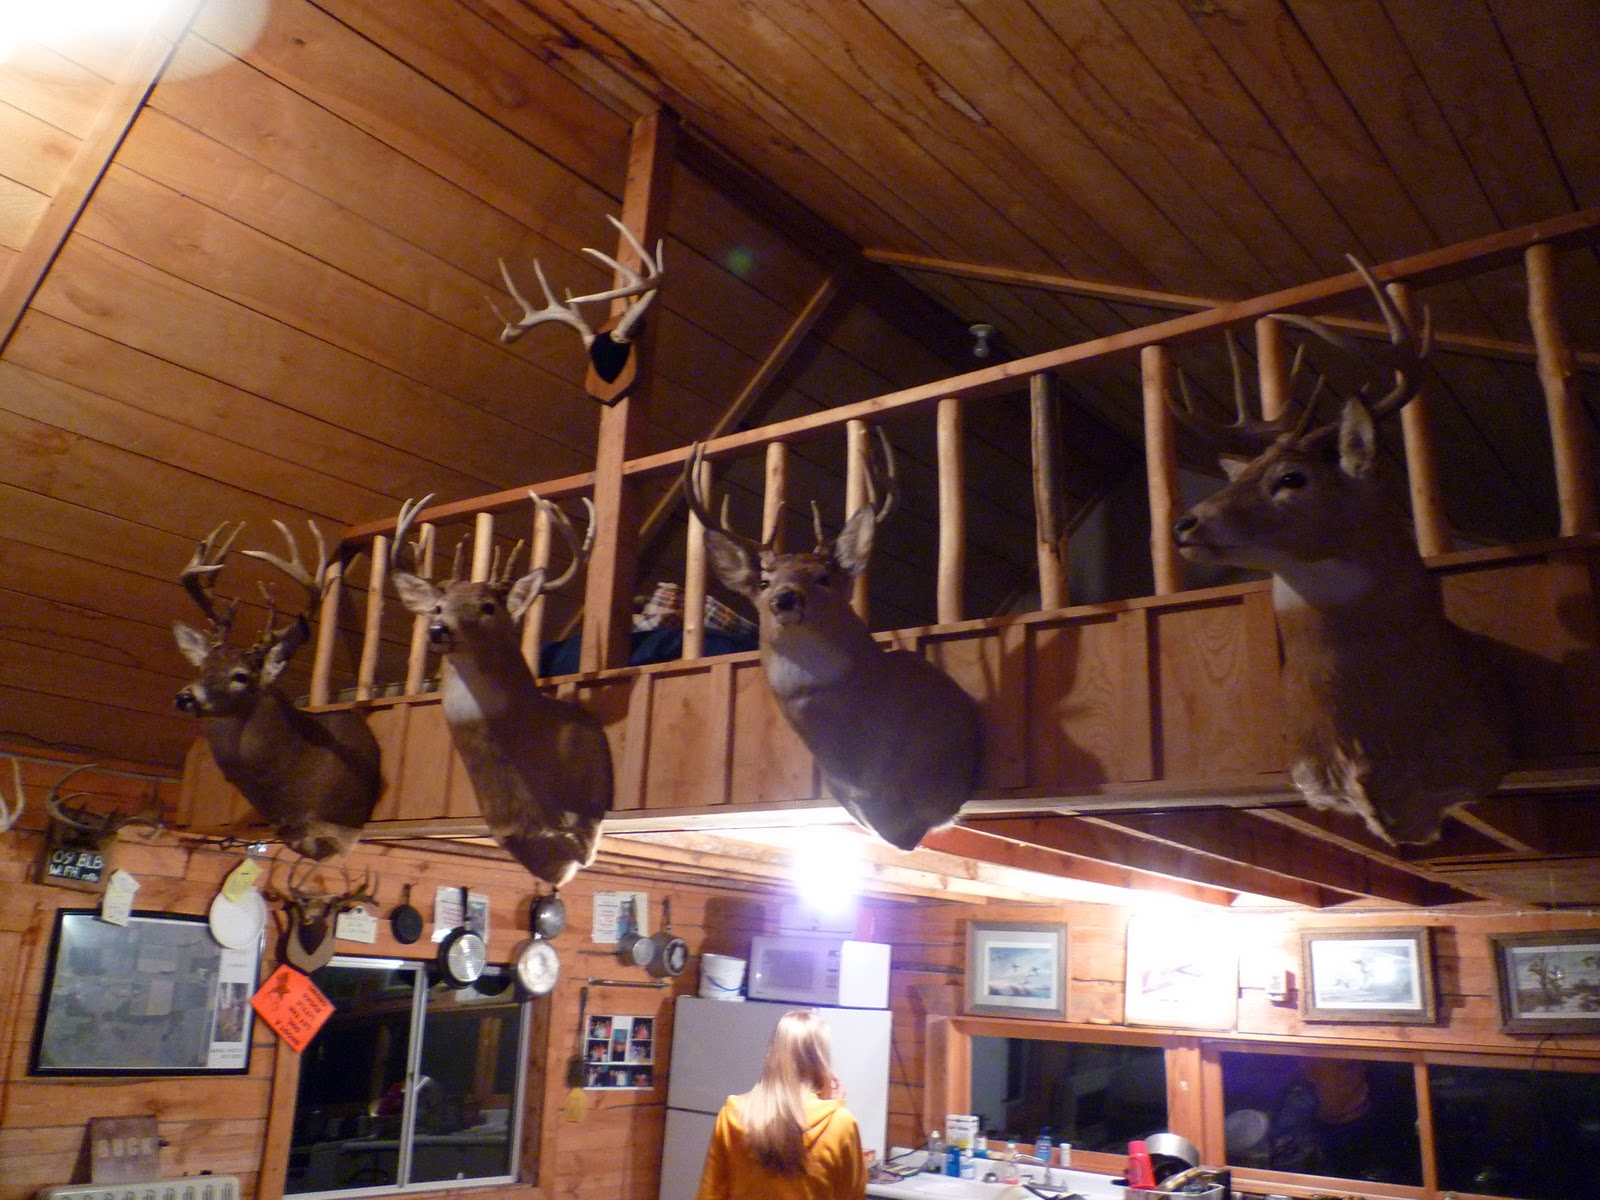 I Thought It Would Be Fun To Post A Few Pictures Of What The Inside Our Cabin Looks Like As Well Some More Trail Camera Photos From Previous Week